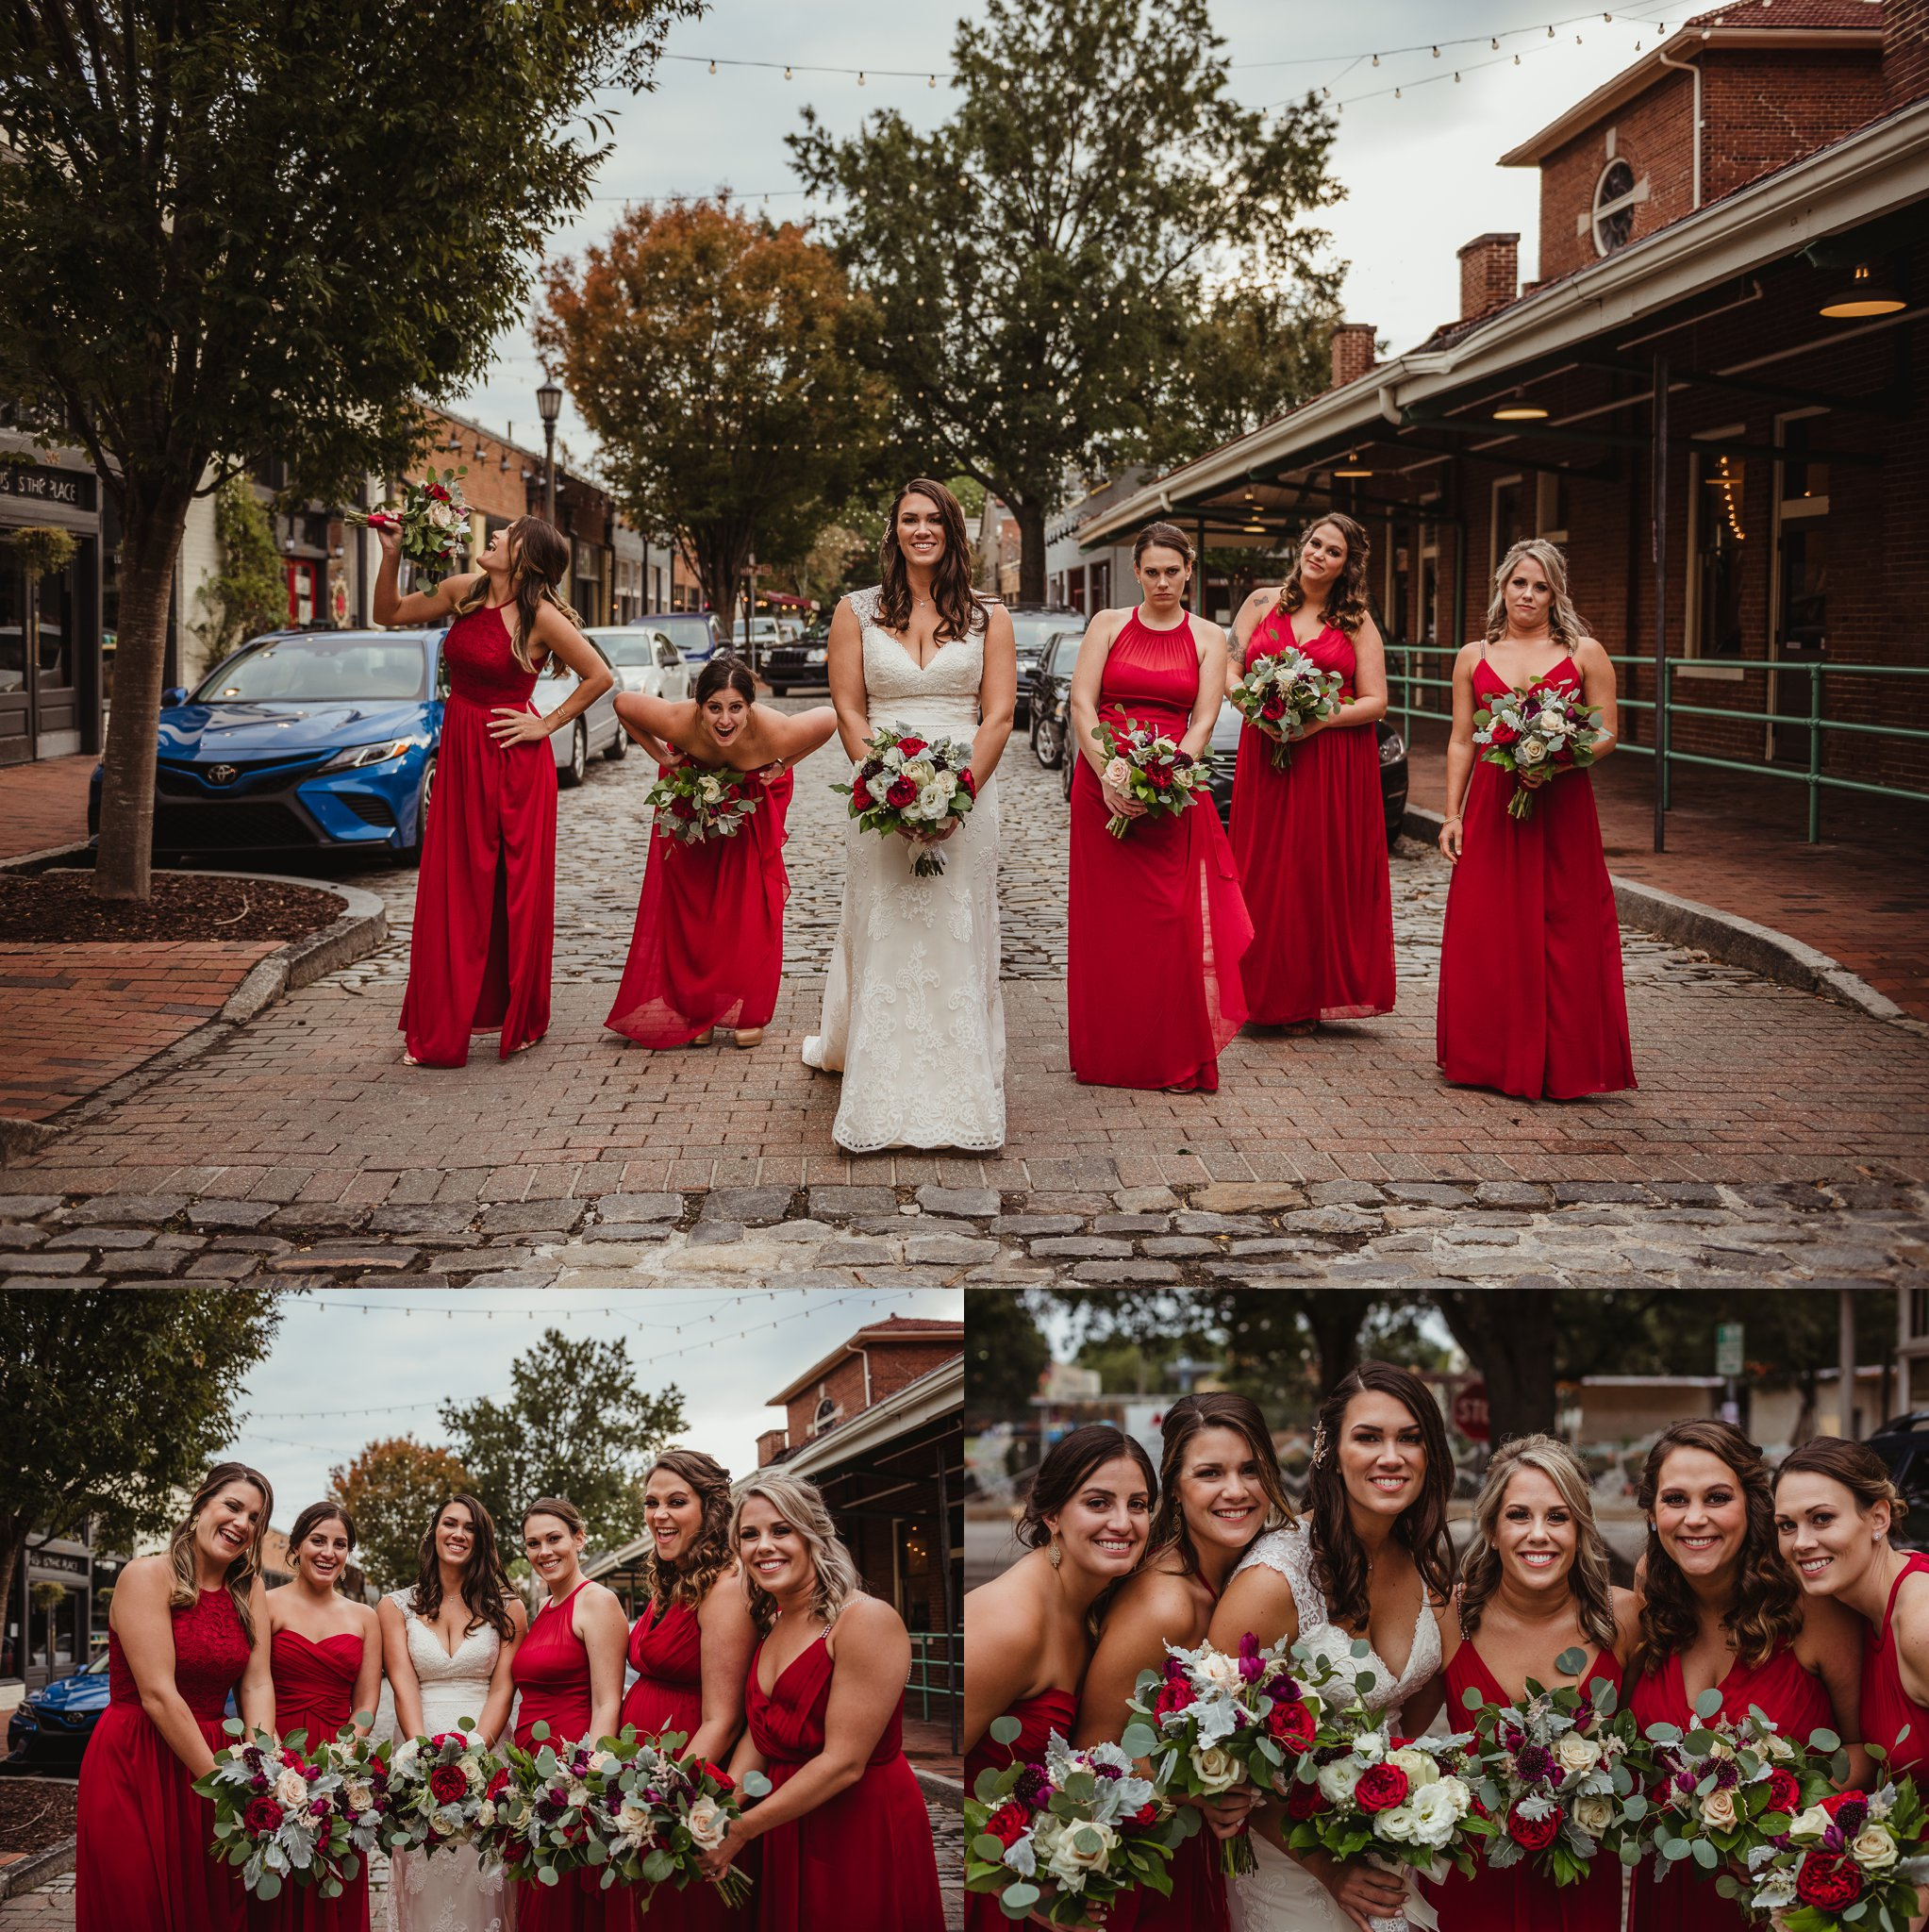 The bridesmaids and bride took group portraits outside at Market Hall after wedding ceremony in downtown Raleigh, photos by Rose Trail Images.